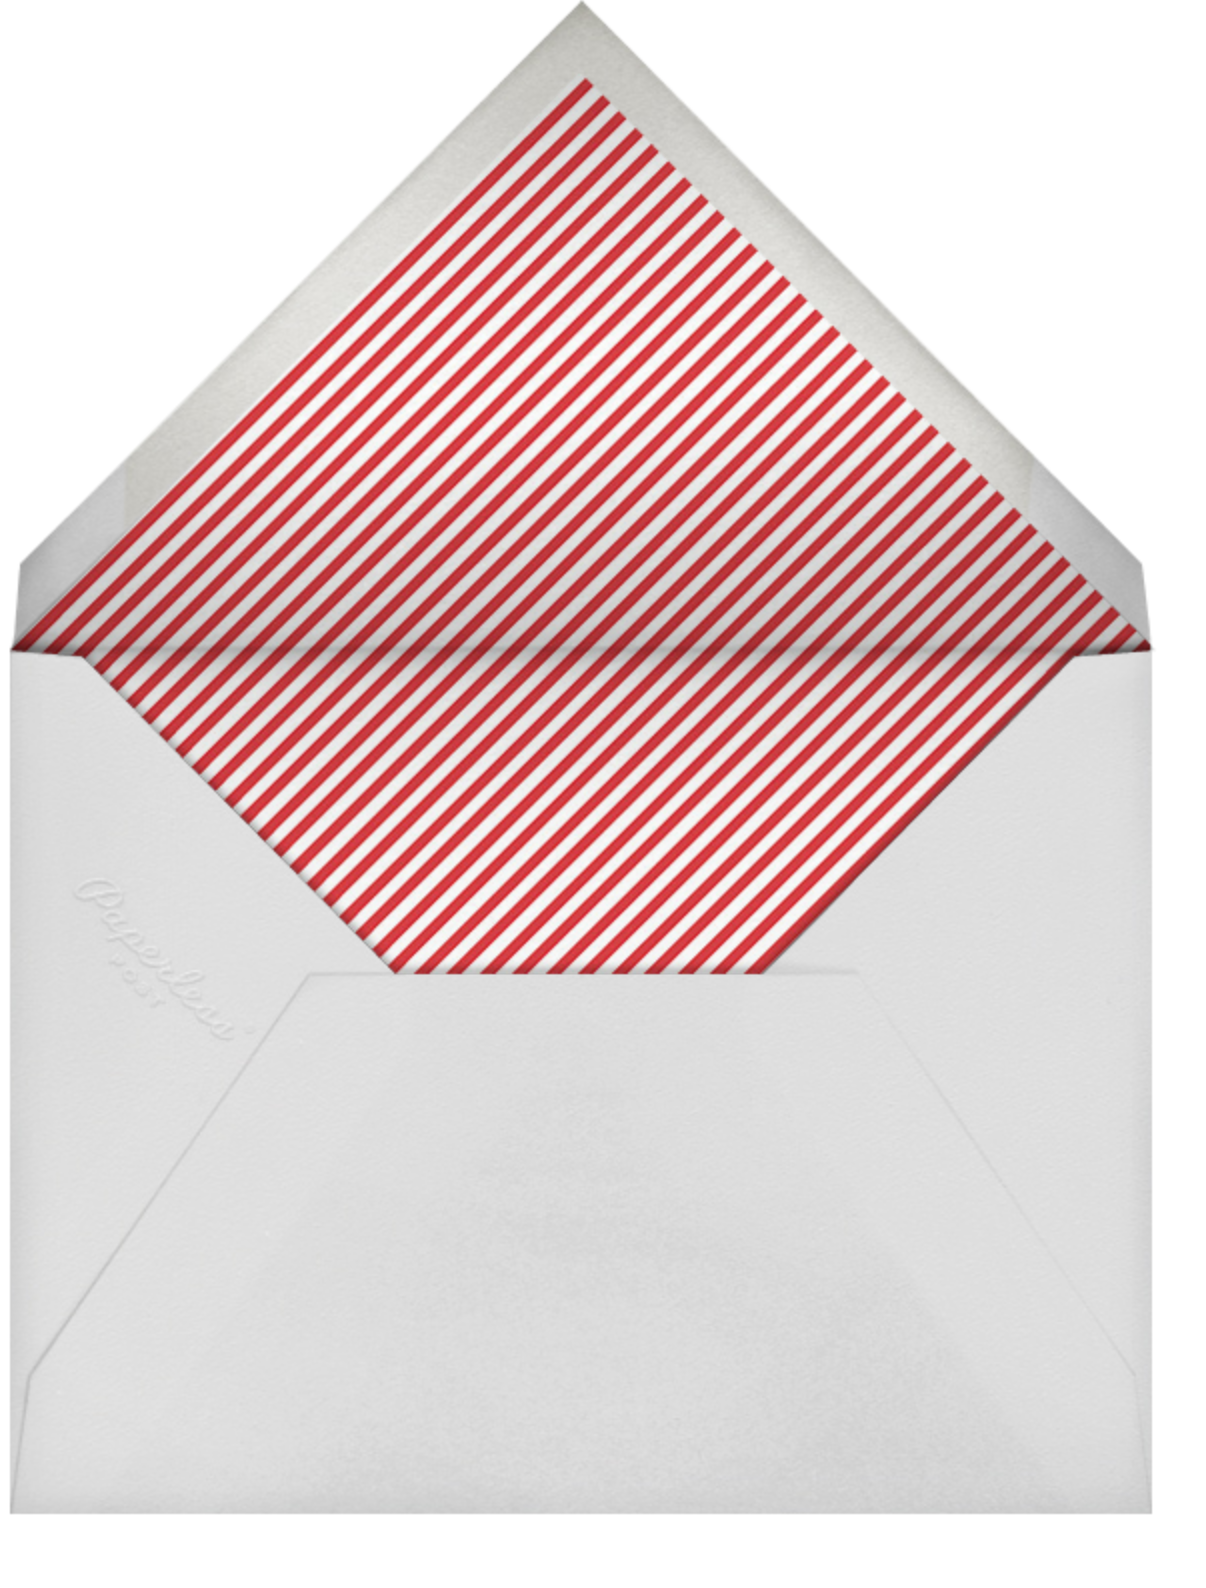 Merry Merry with Ornaments - Linda and Harriett - Christmas party - envelope back